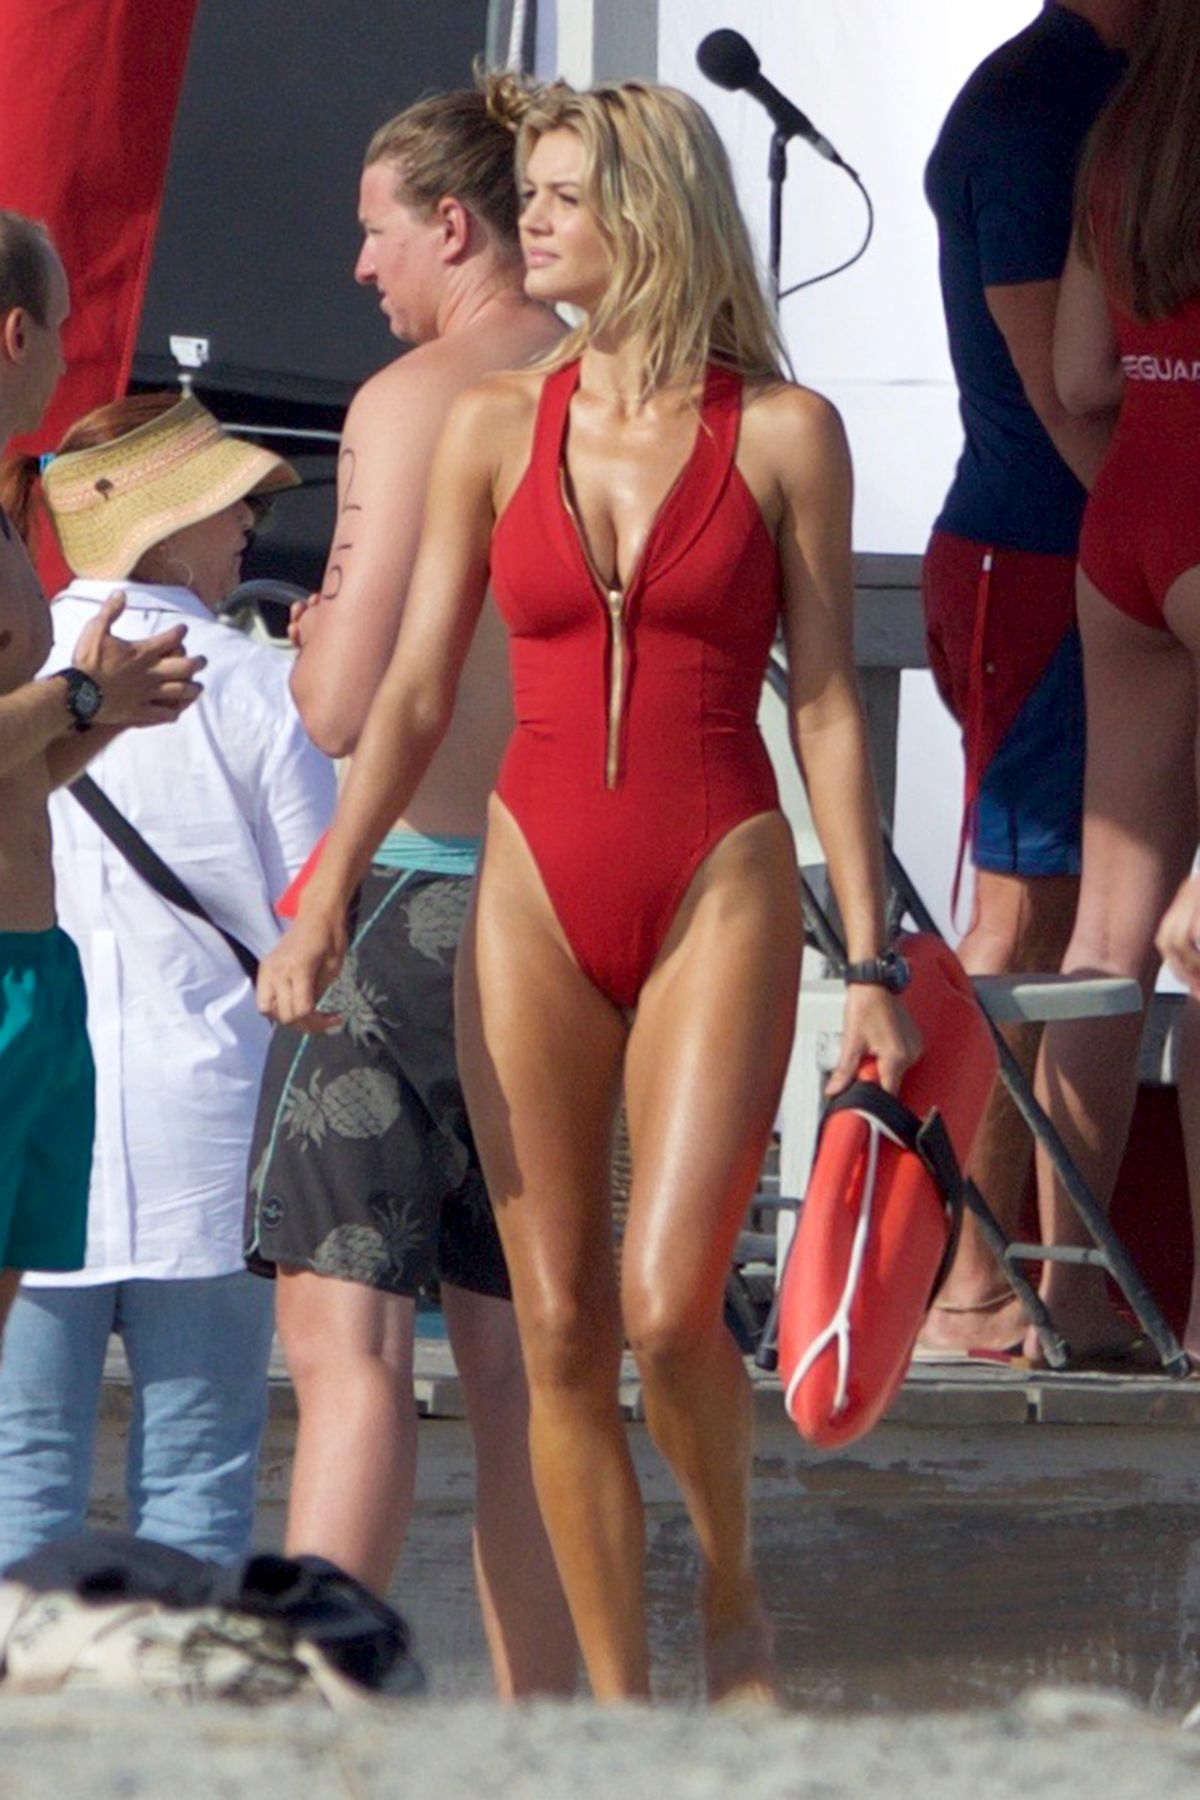 Kelly Rohrbach On The Set Of Baywatch In Georgia 04 18 border=